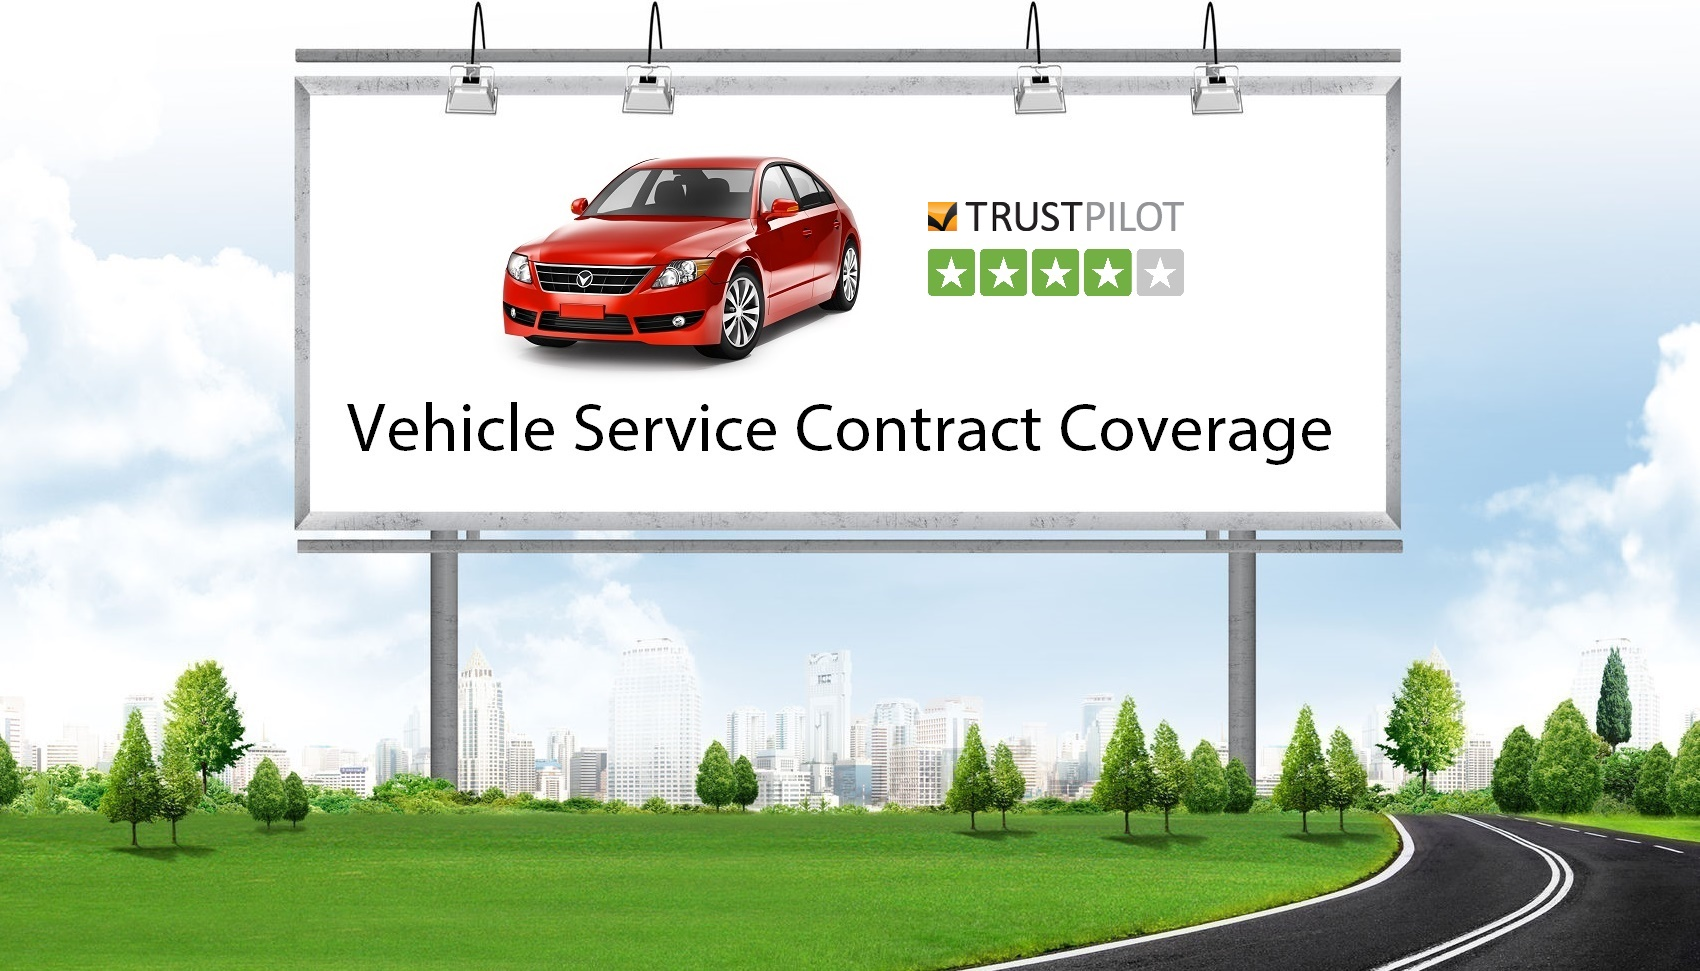 Vehicle Service Contract Coverage